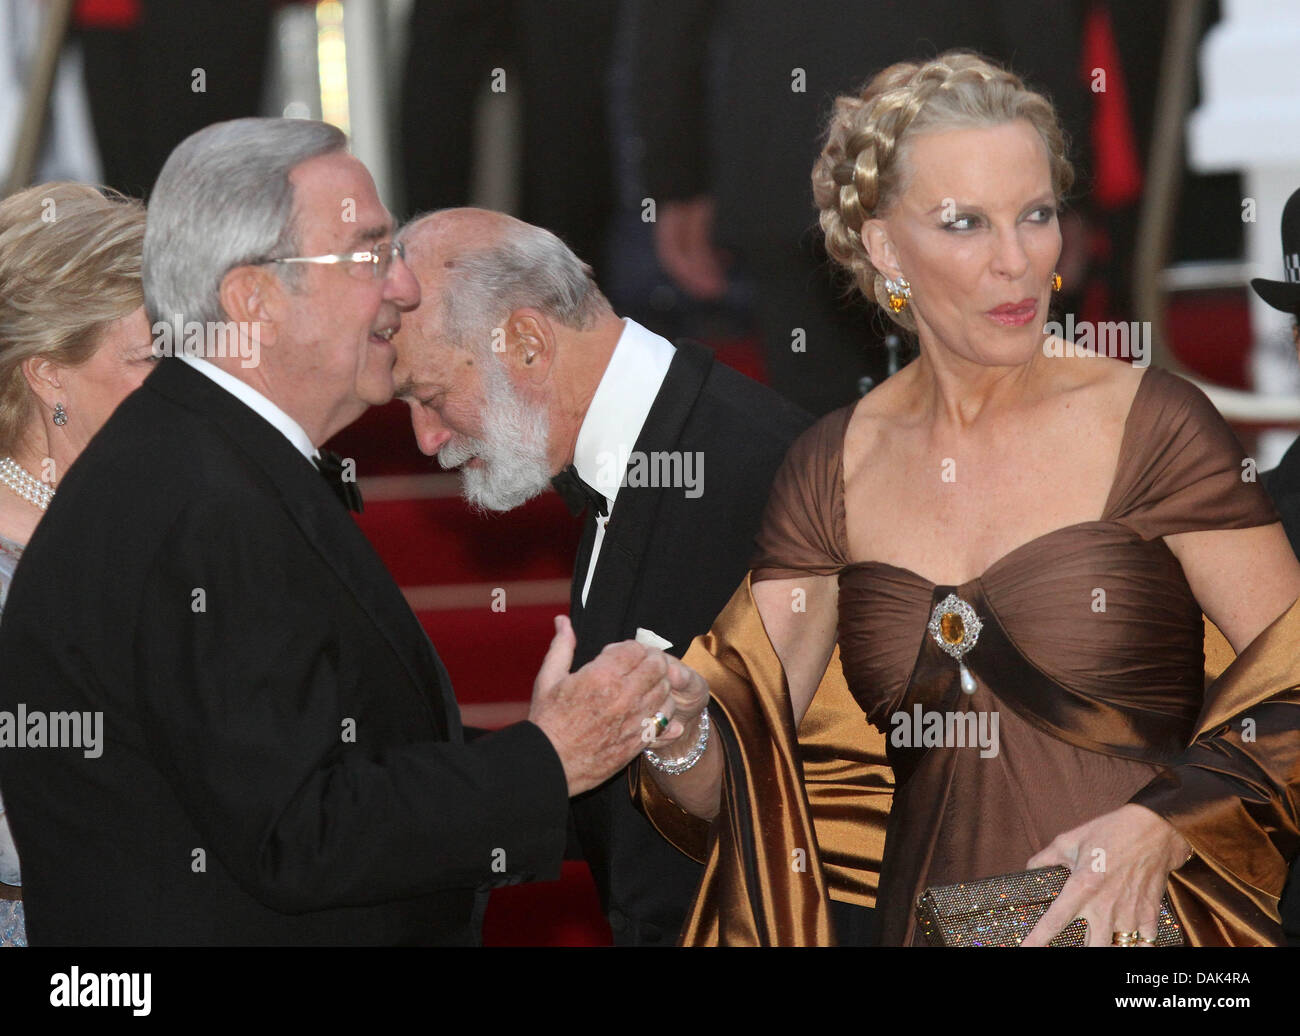 king constantine of greece and princess michael arrive for